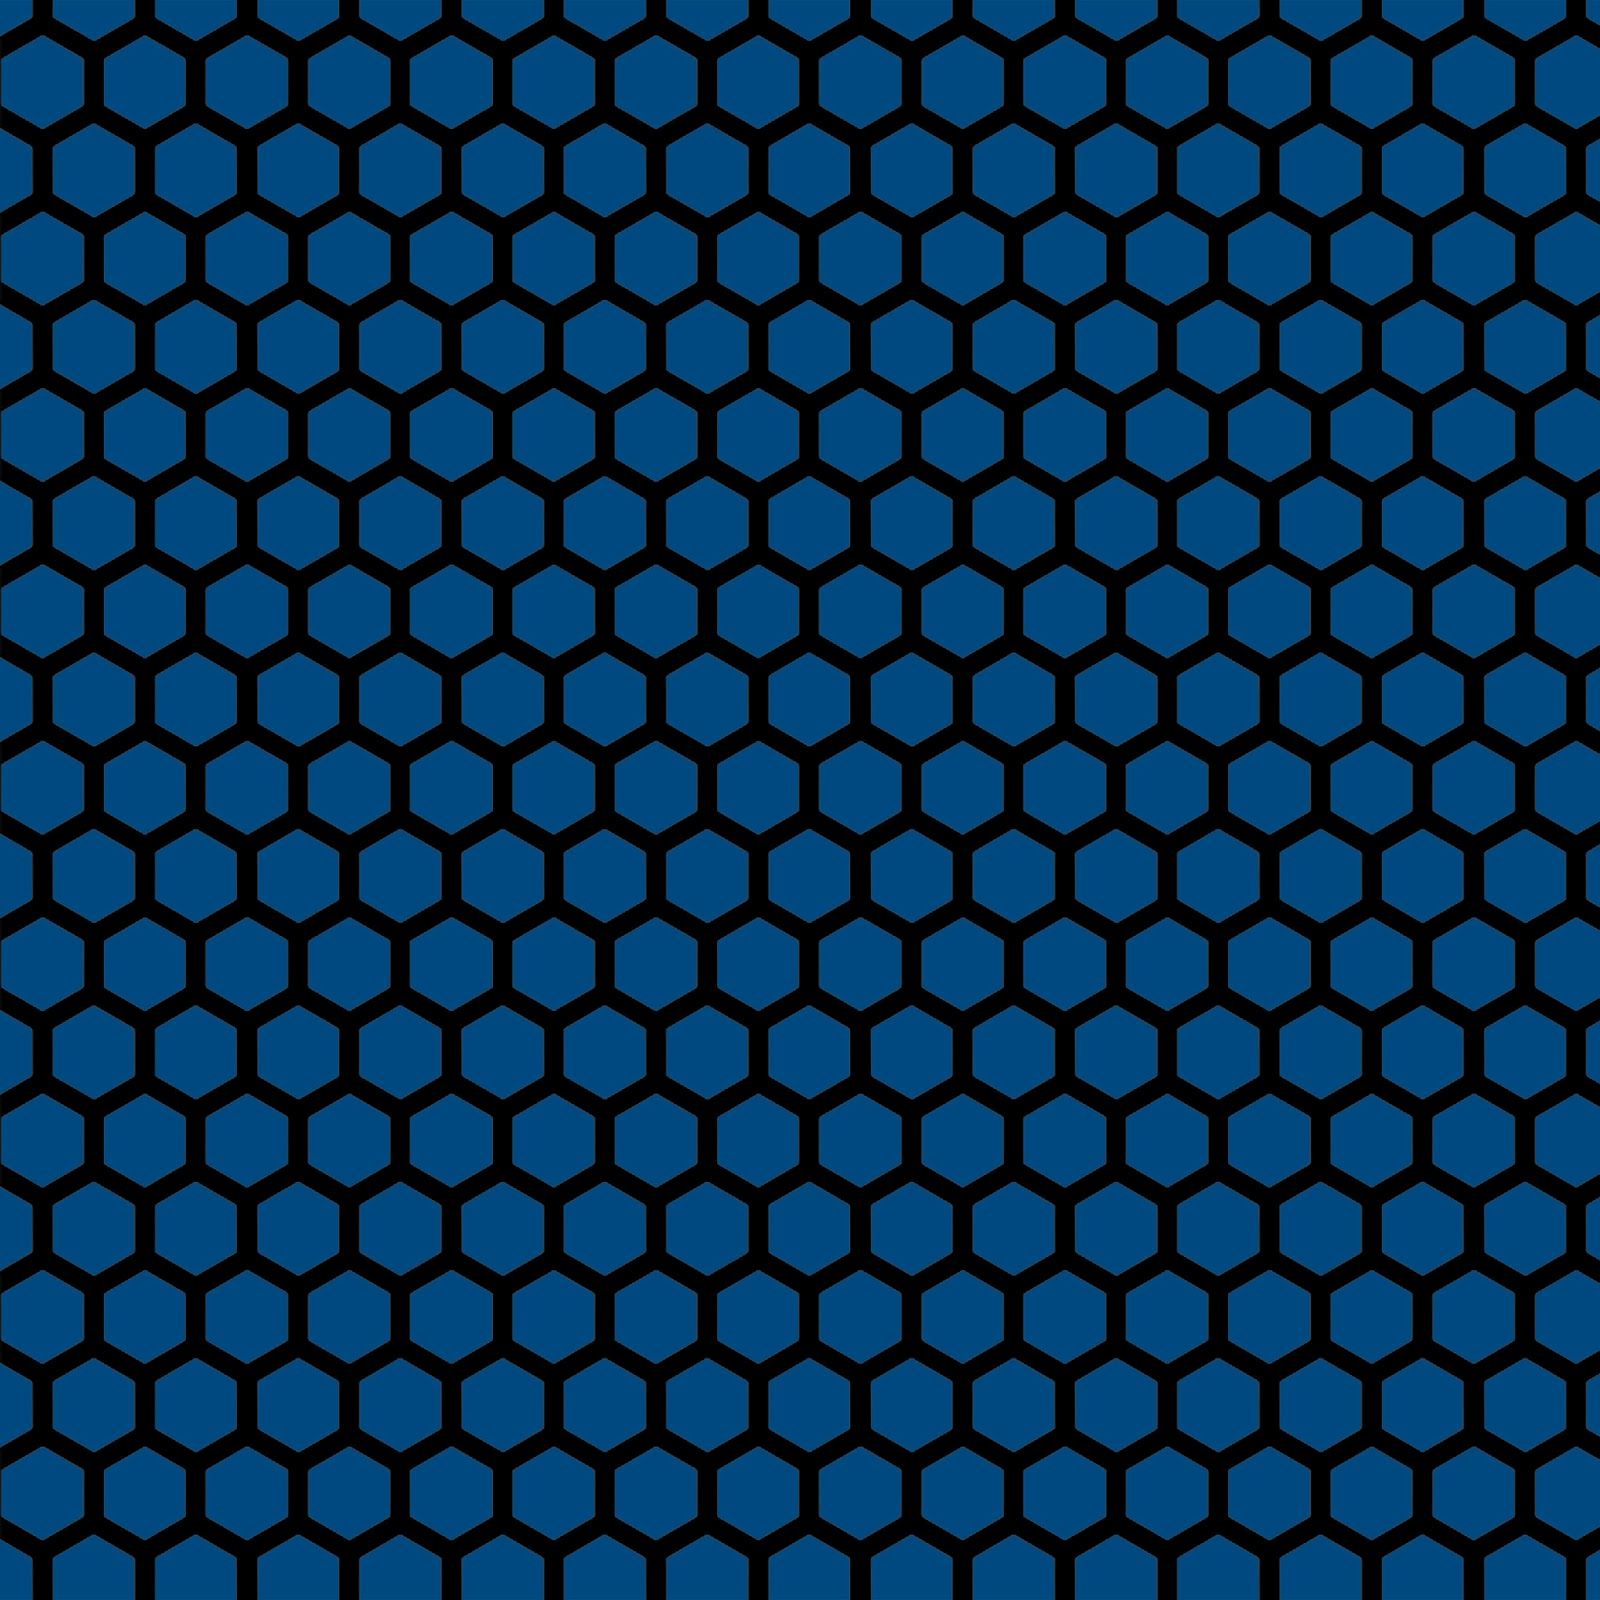 Blue hexagon wallpaper